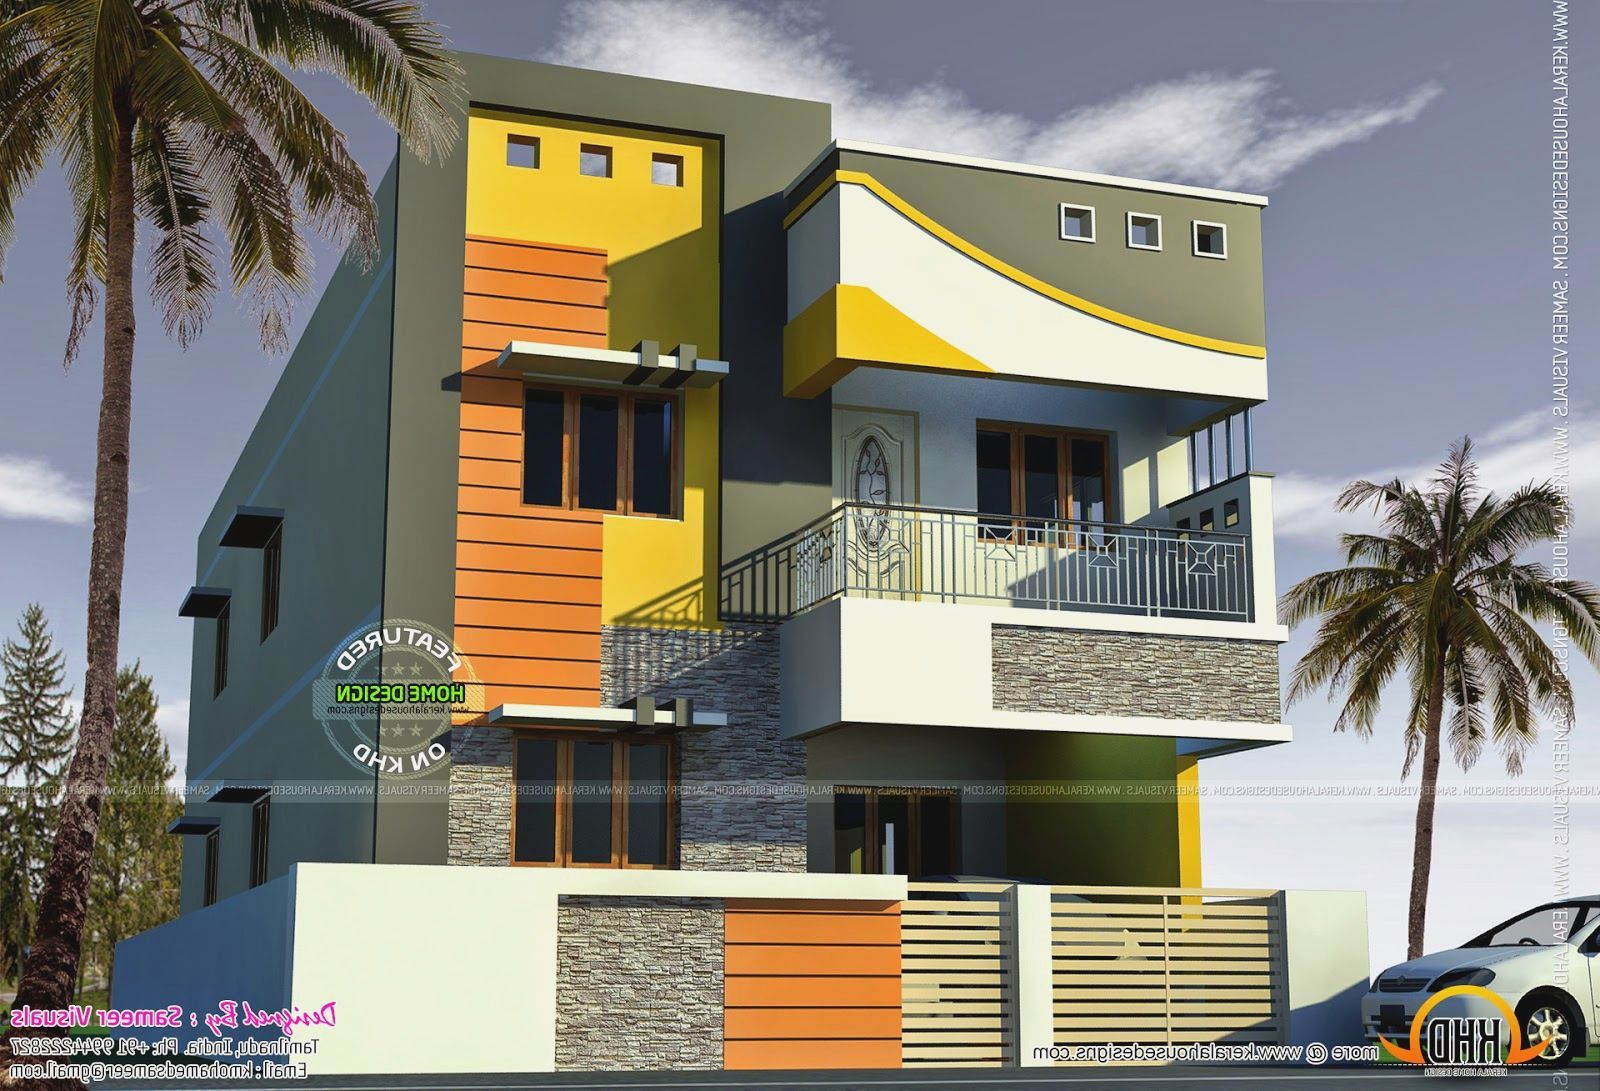 Tamilnadu house models more picture tamilnadu house models for Indian house portico models